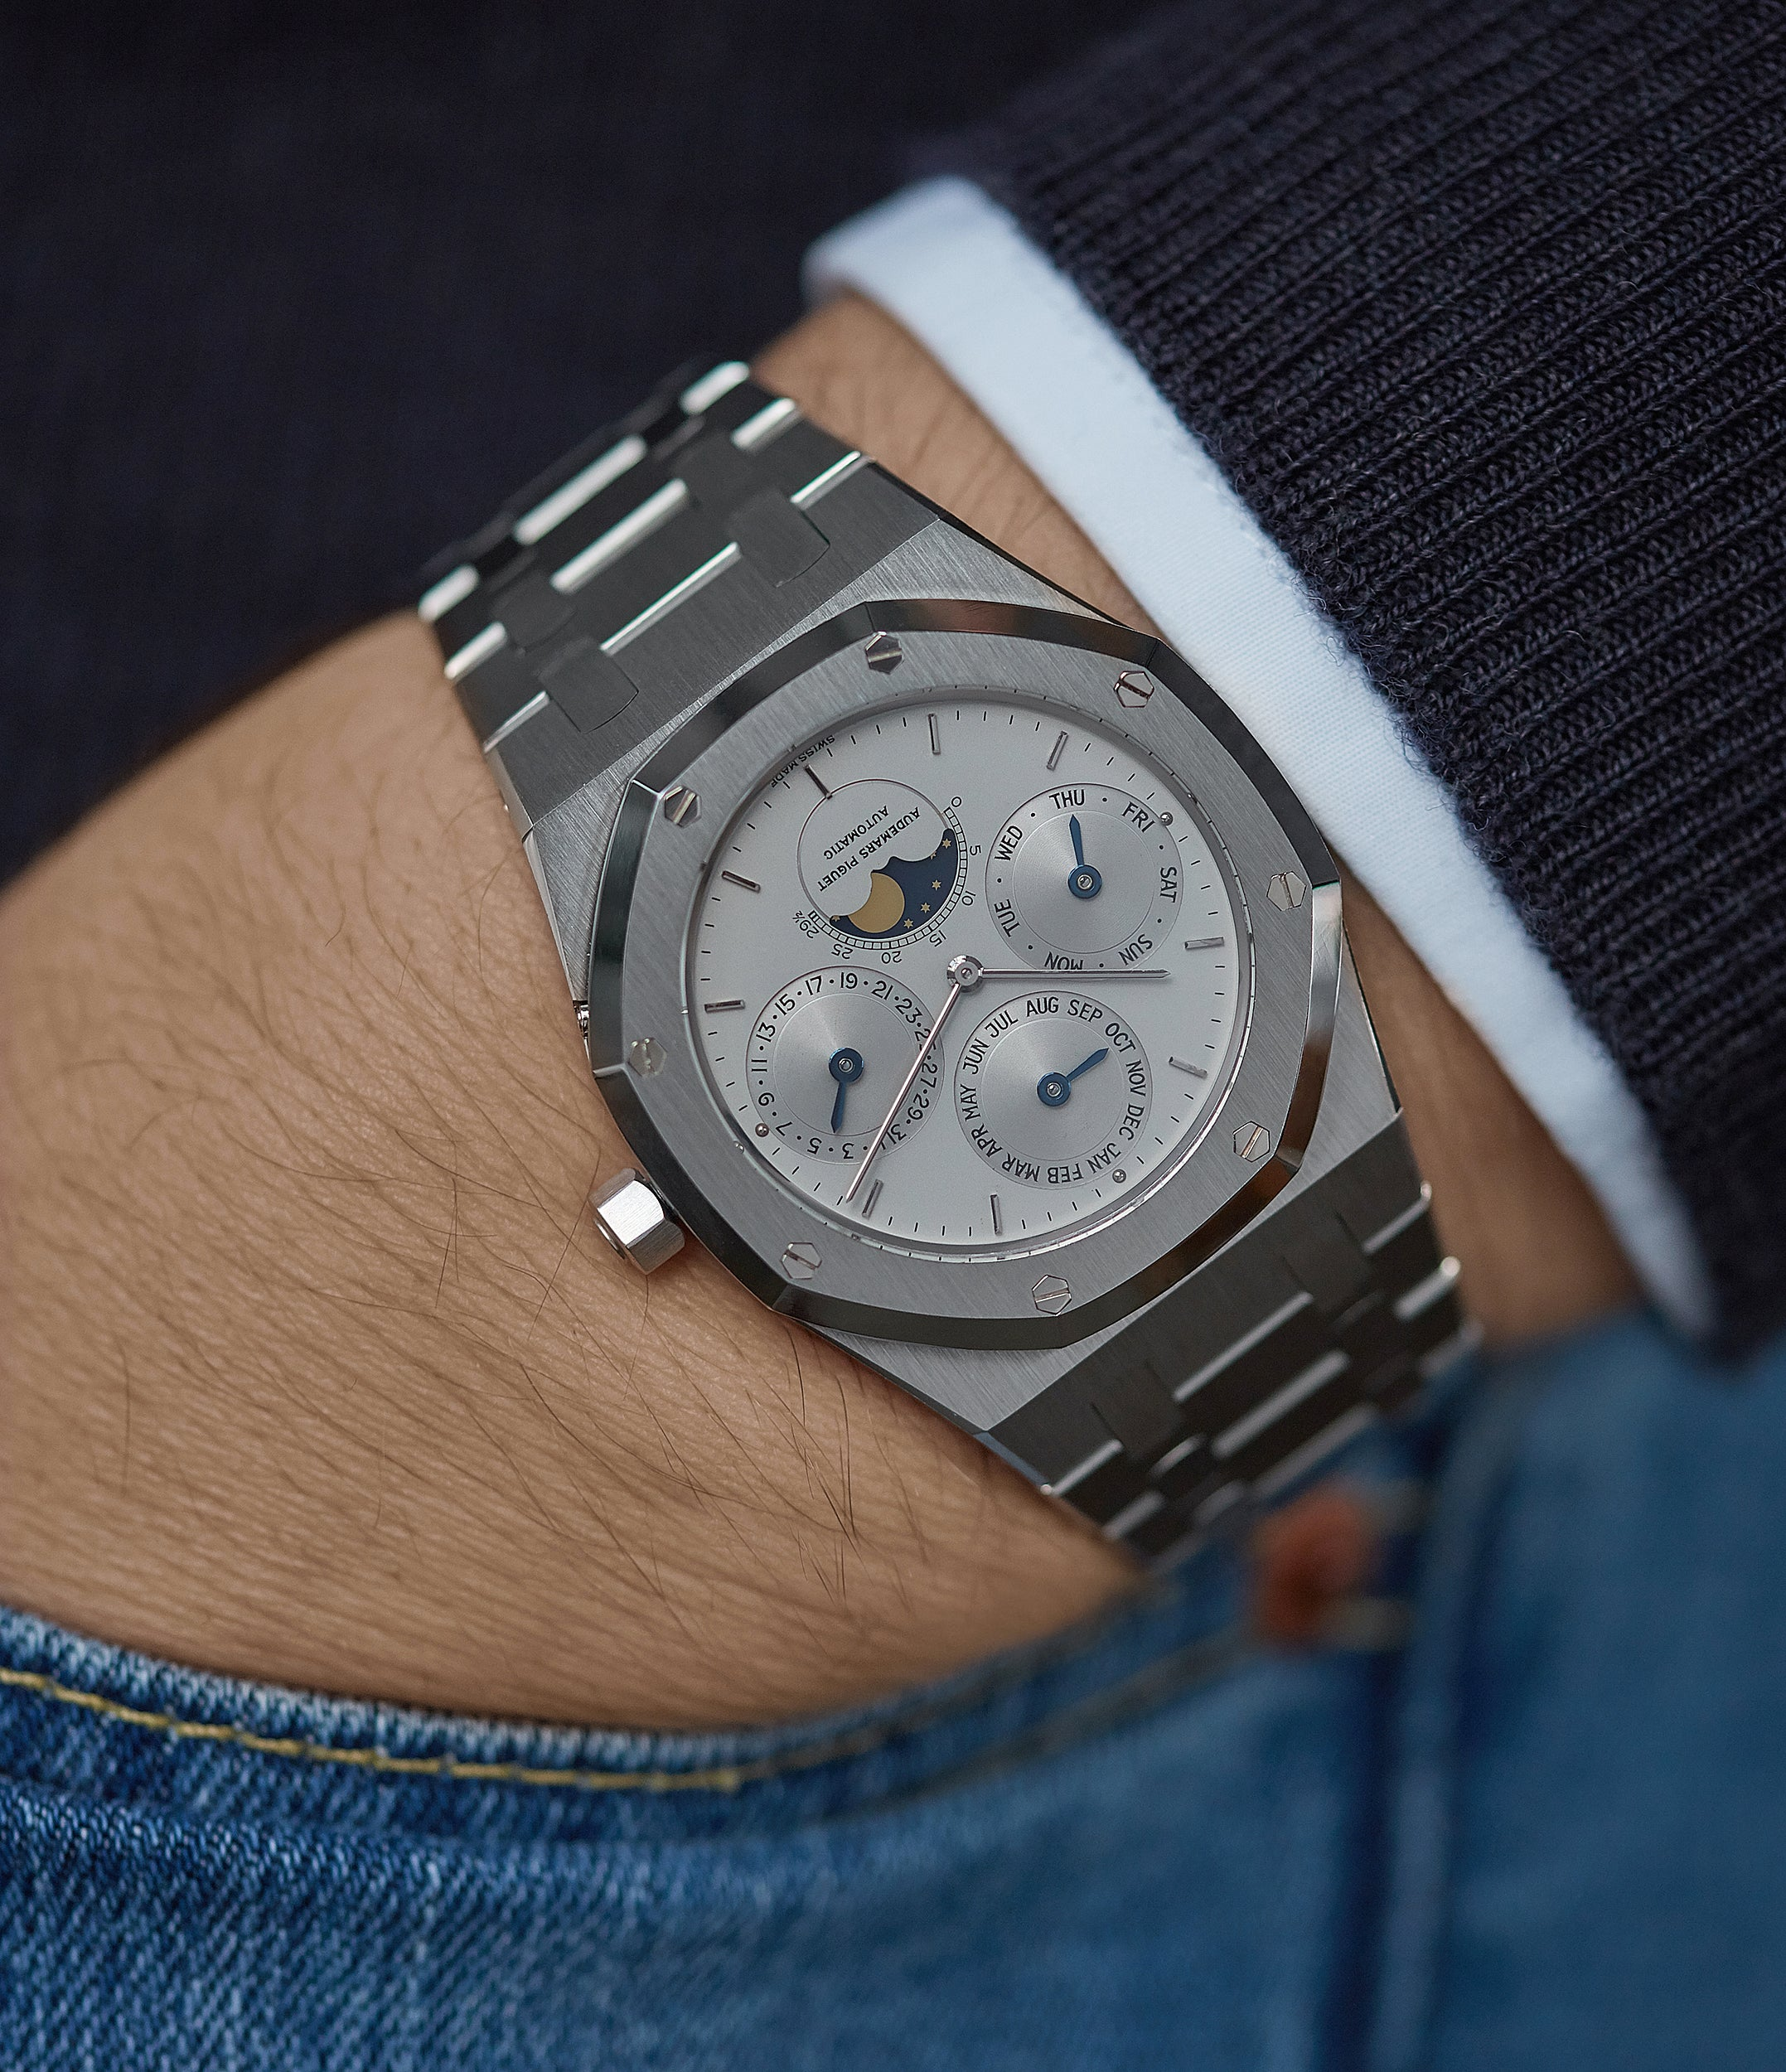 rare Audemars Piguet Royal Oak 25654ST vintage watch for sale online at A Collected Man London UK specialist of rare watches